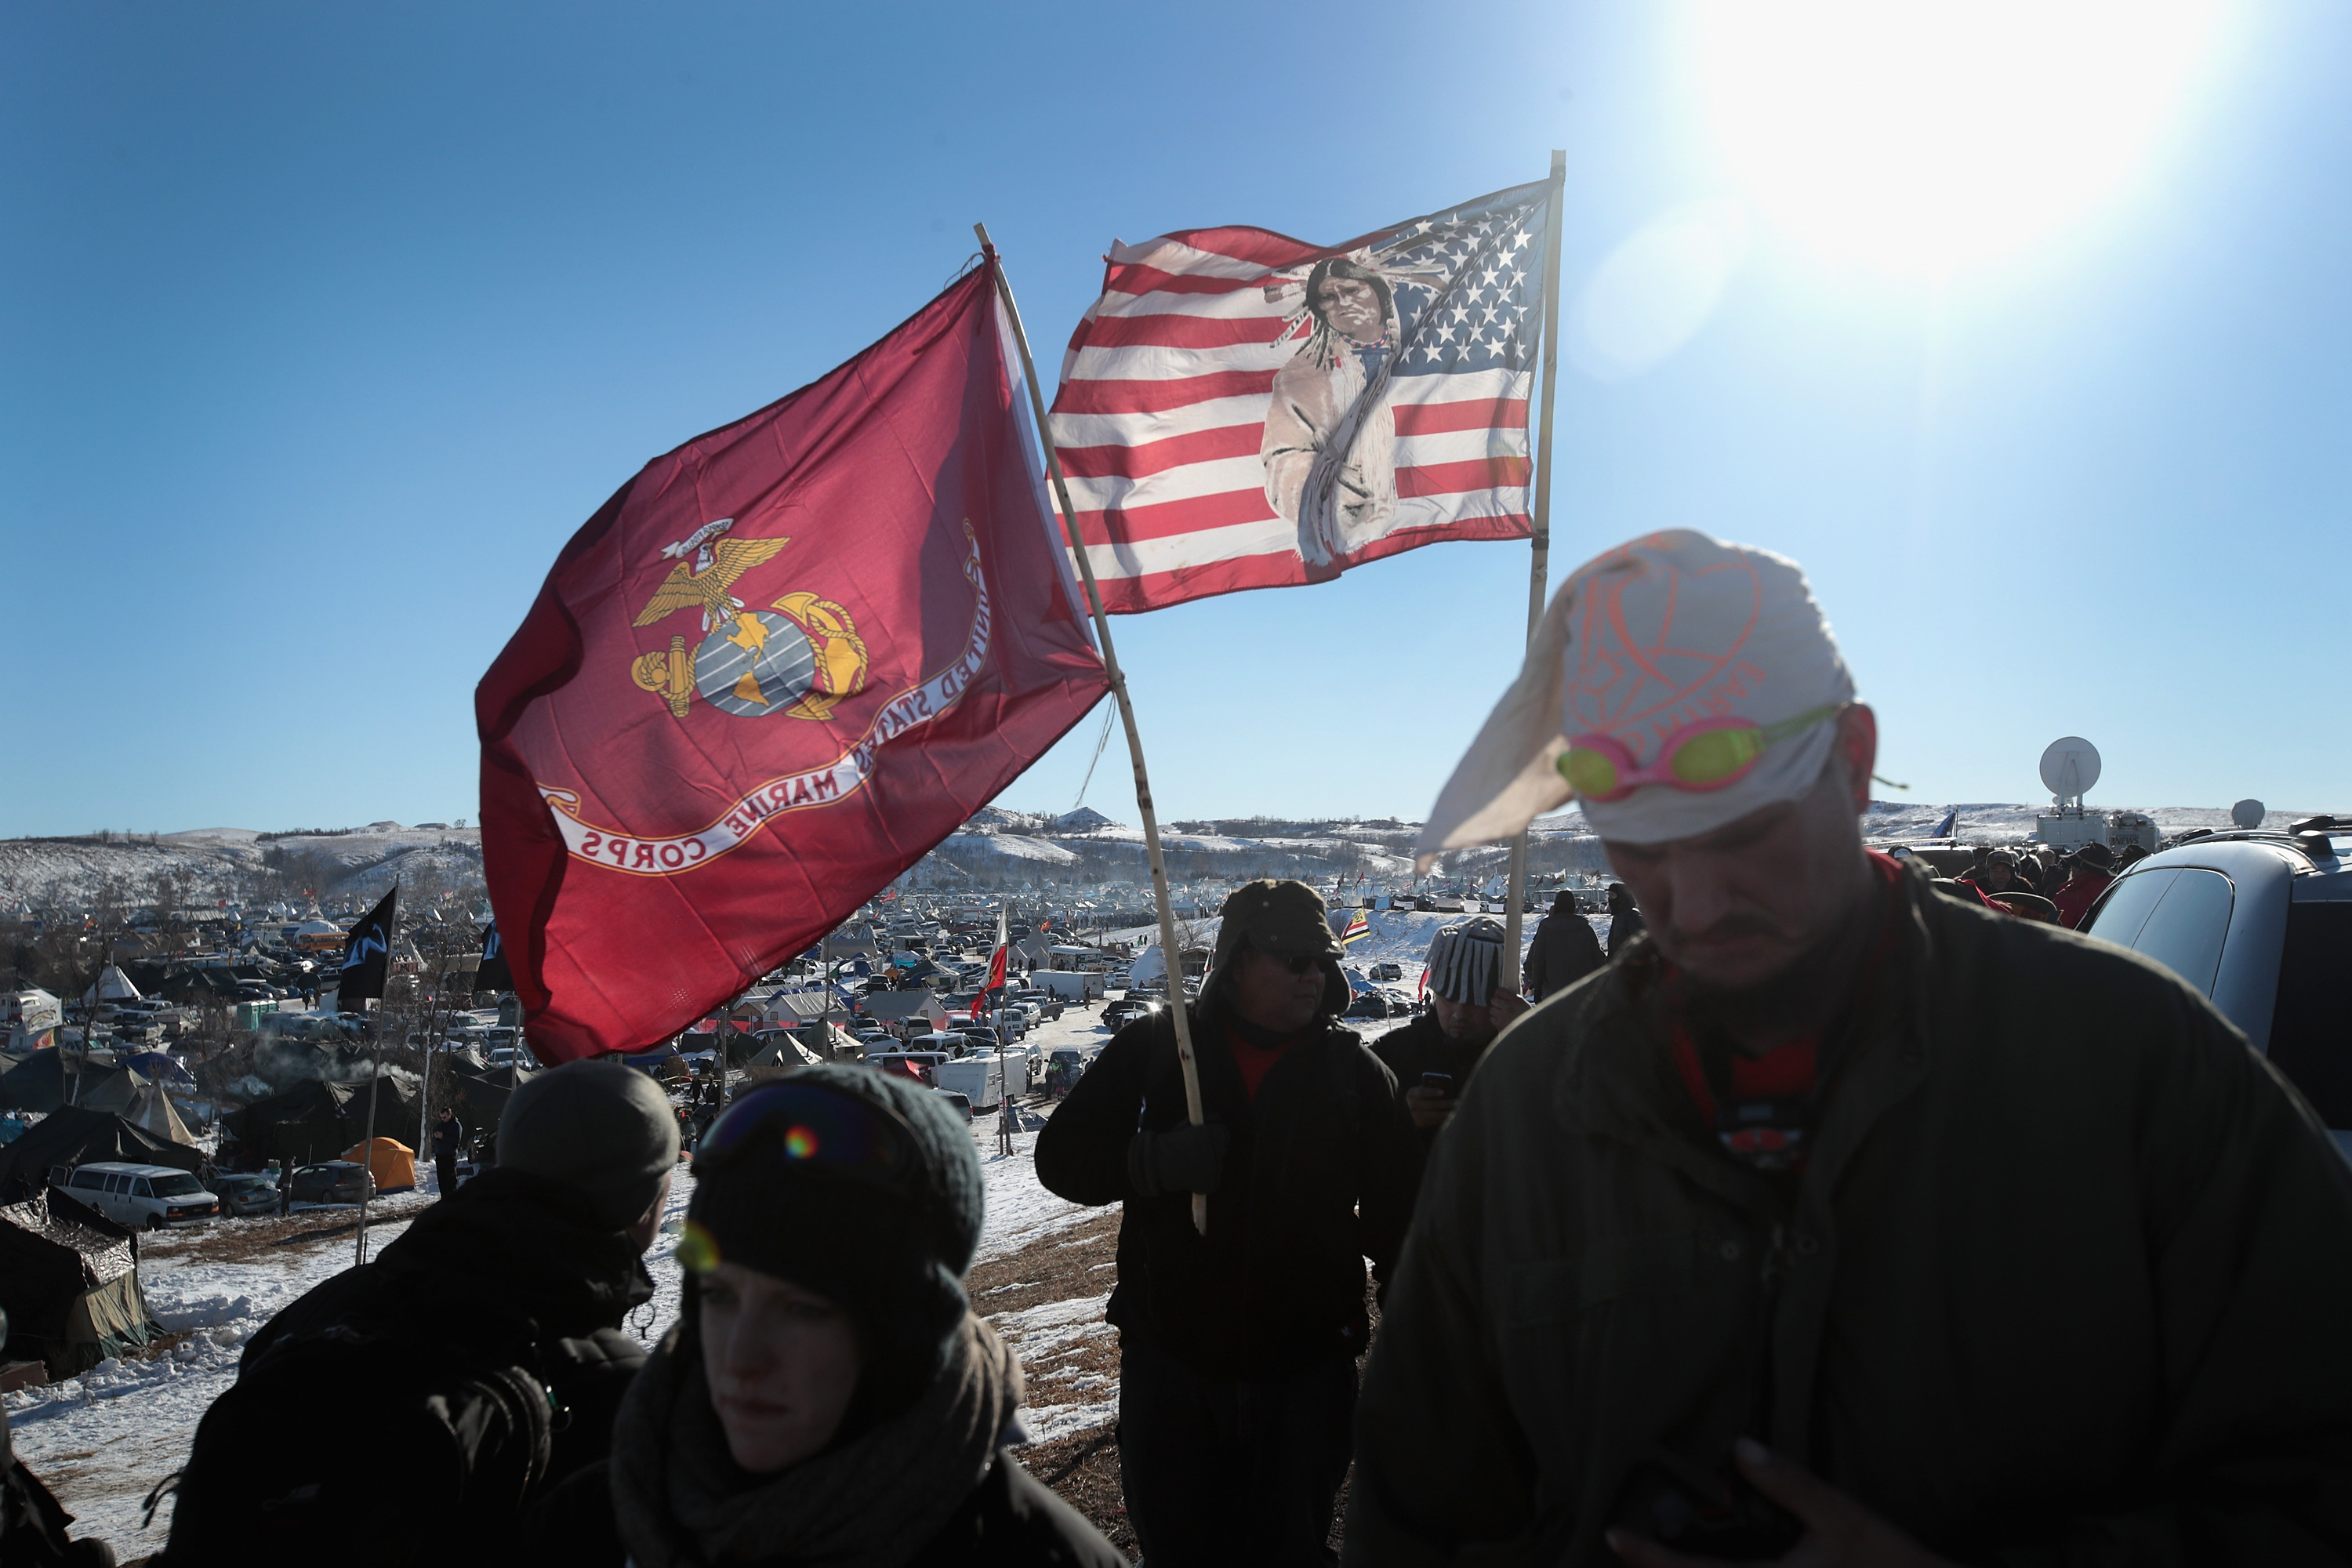 Military veterans arrive to support activists at Oceti Sakowin Camp on the edge of the Standing Rock Sioux Reservation Cannon Ball, North Dakota.